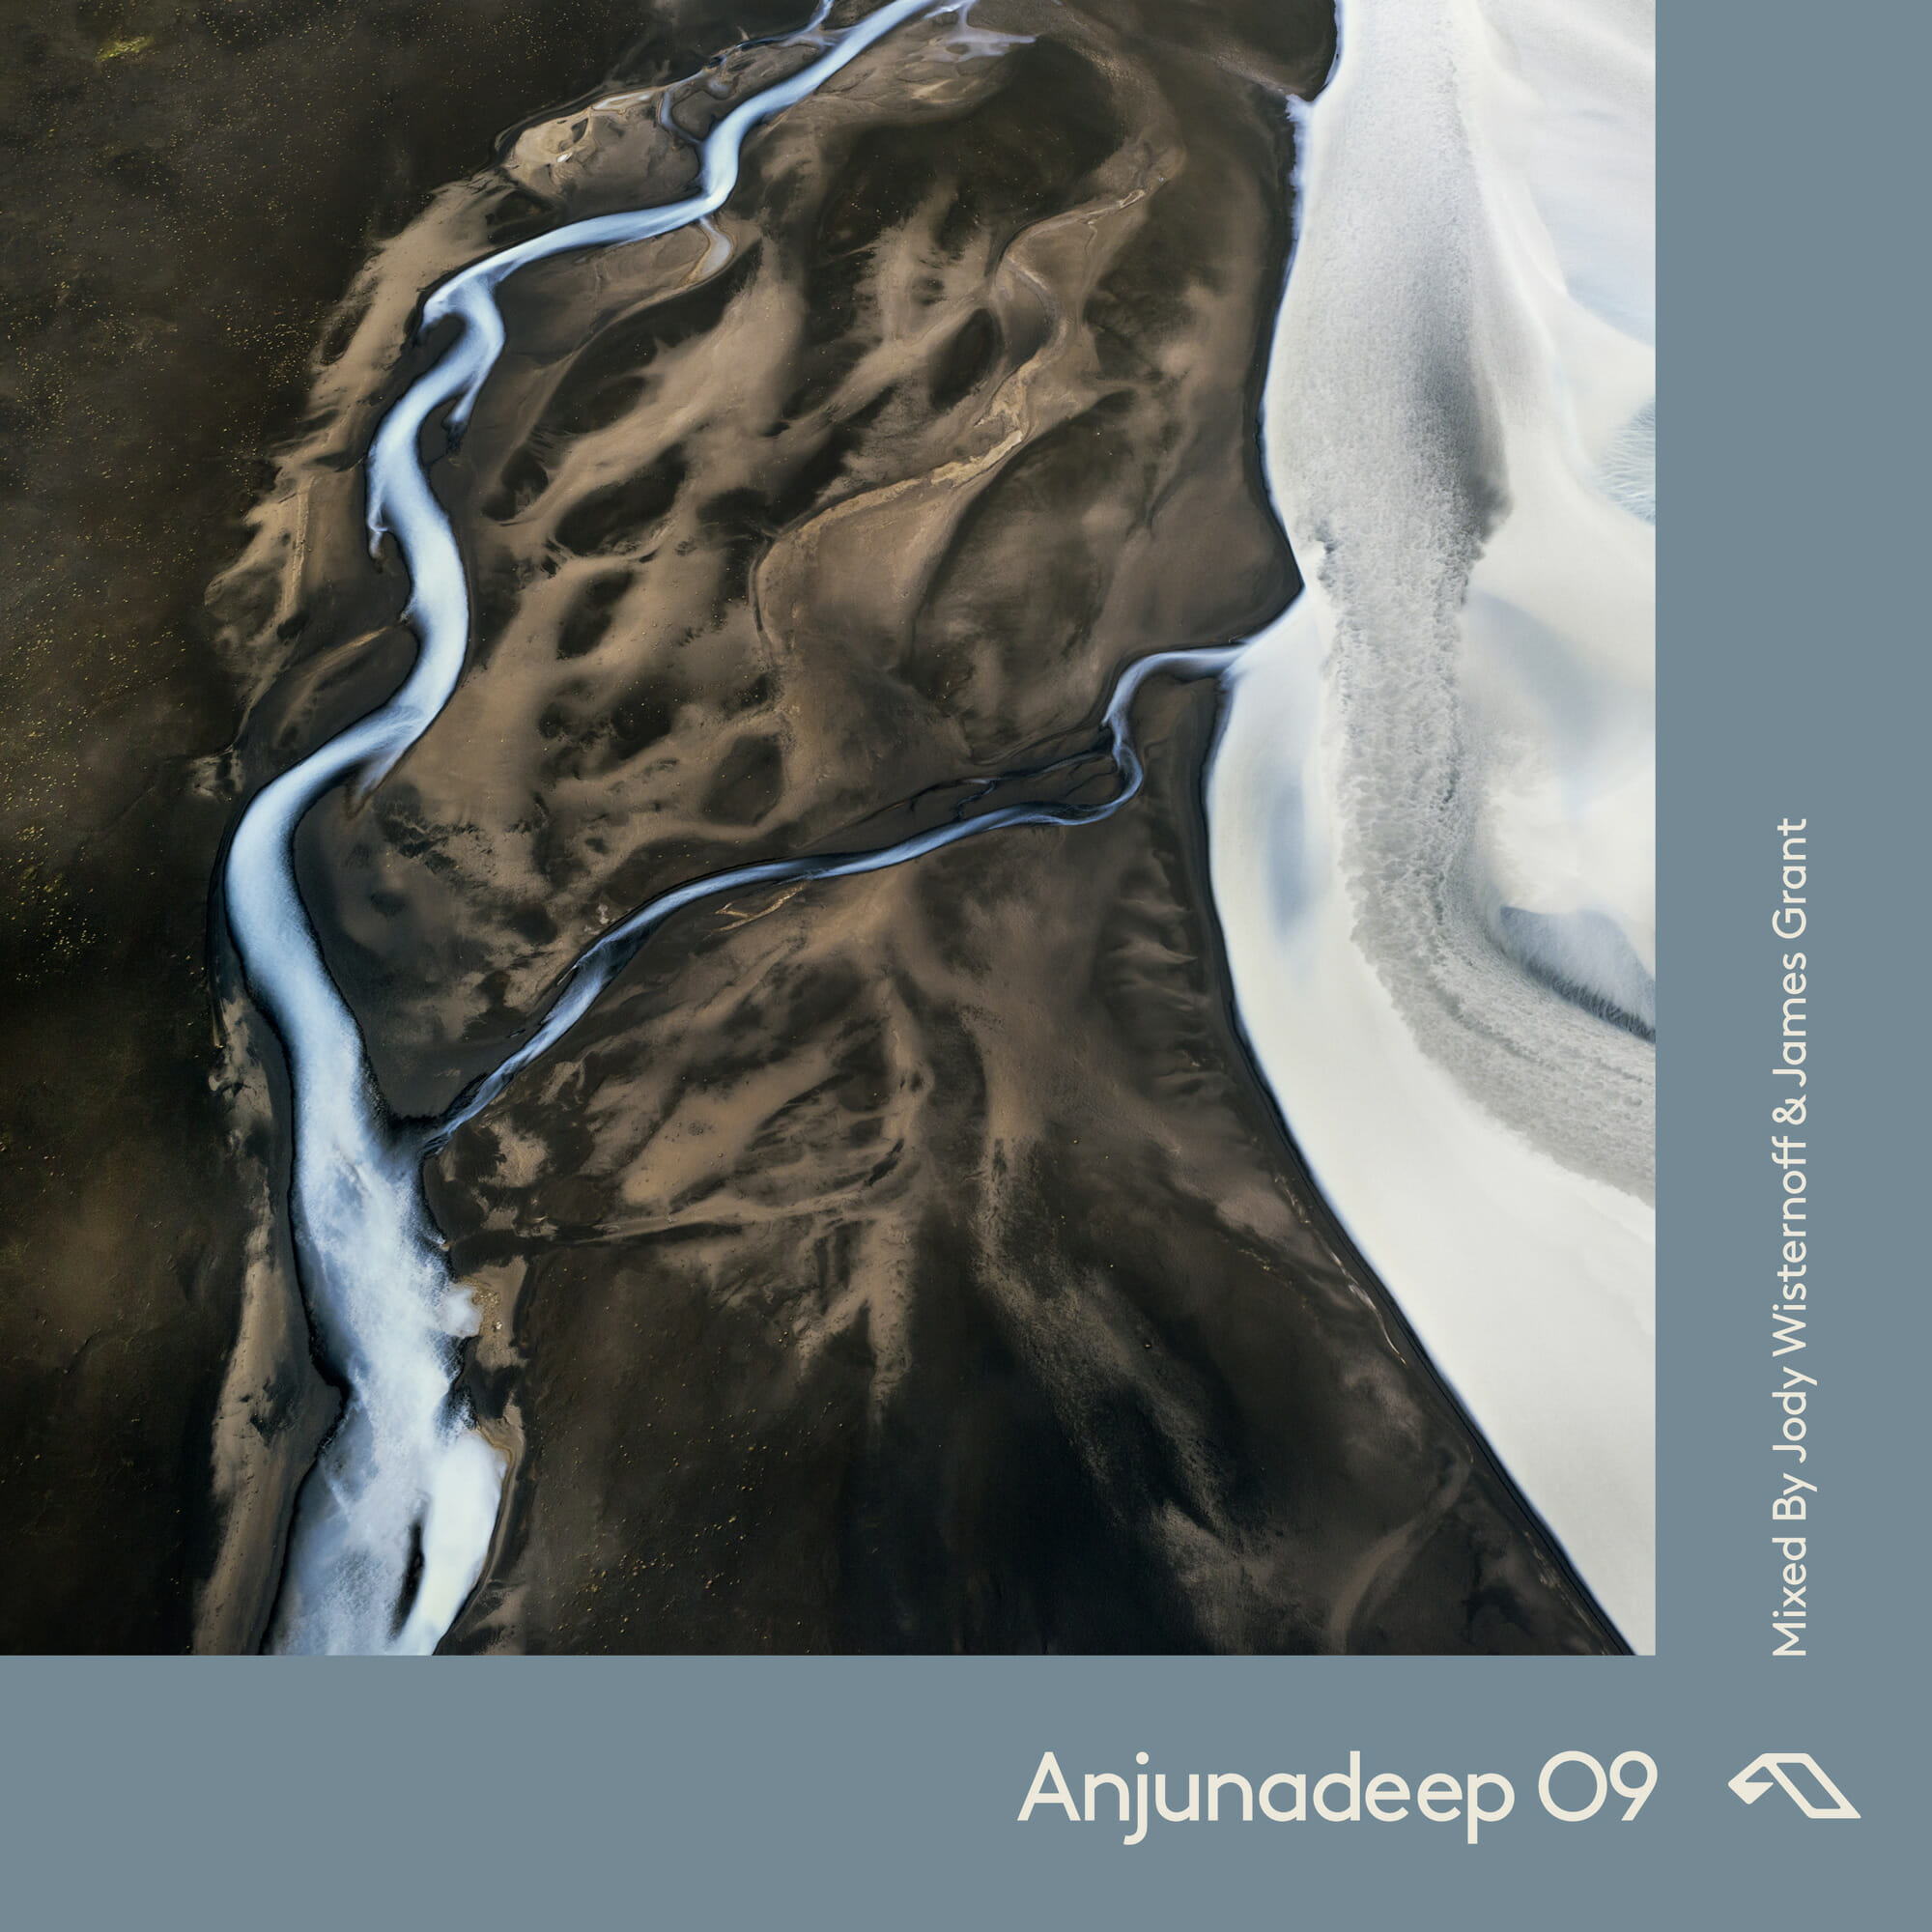 'Anjunadeep 09' offers an ethereal ride through deep and progressive